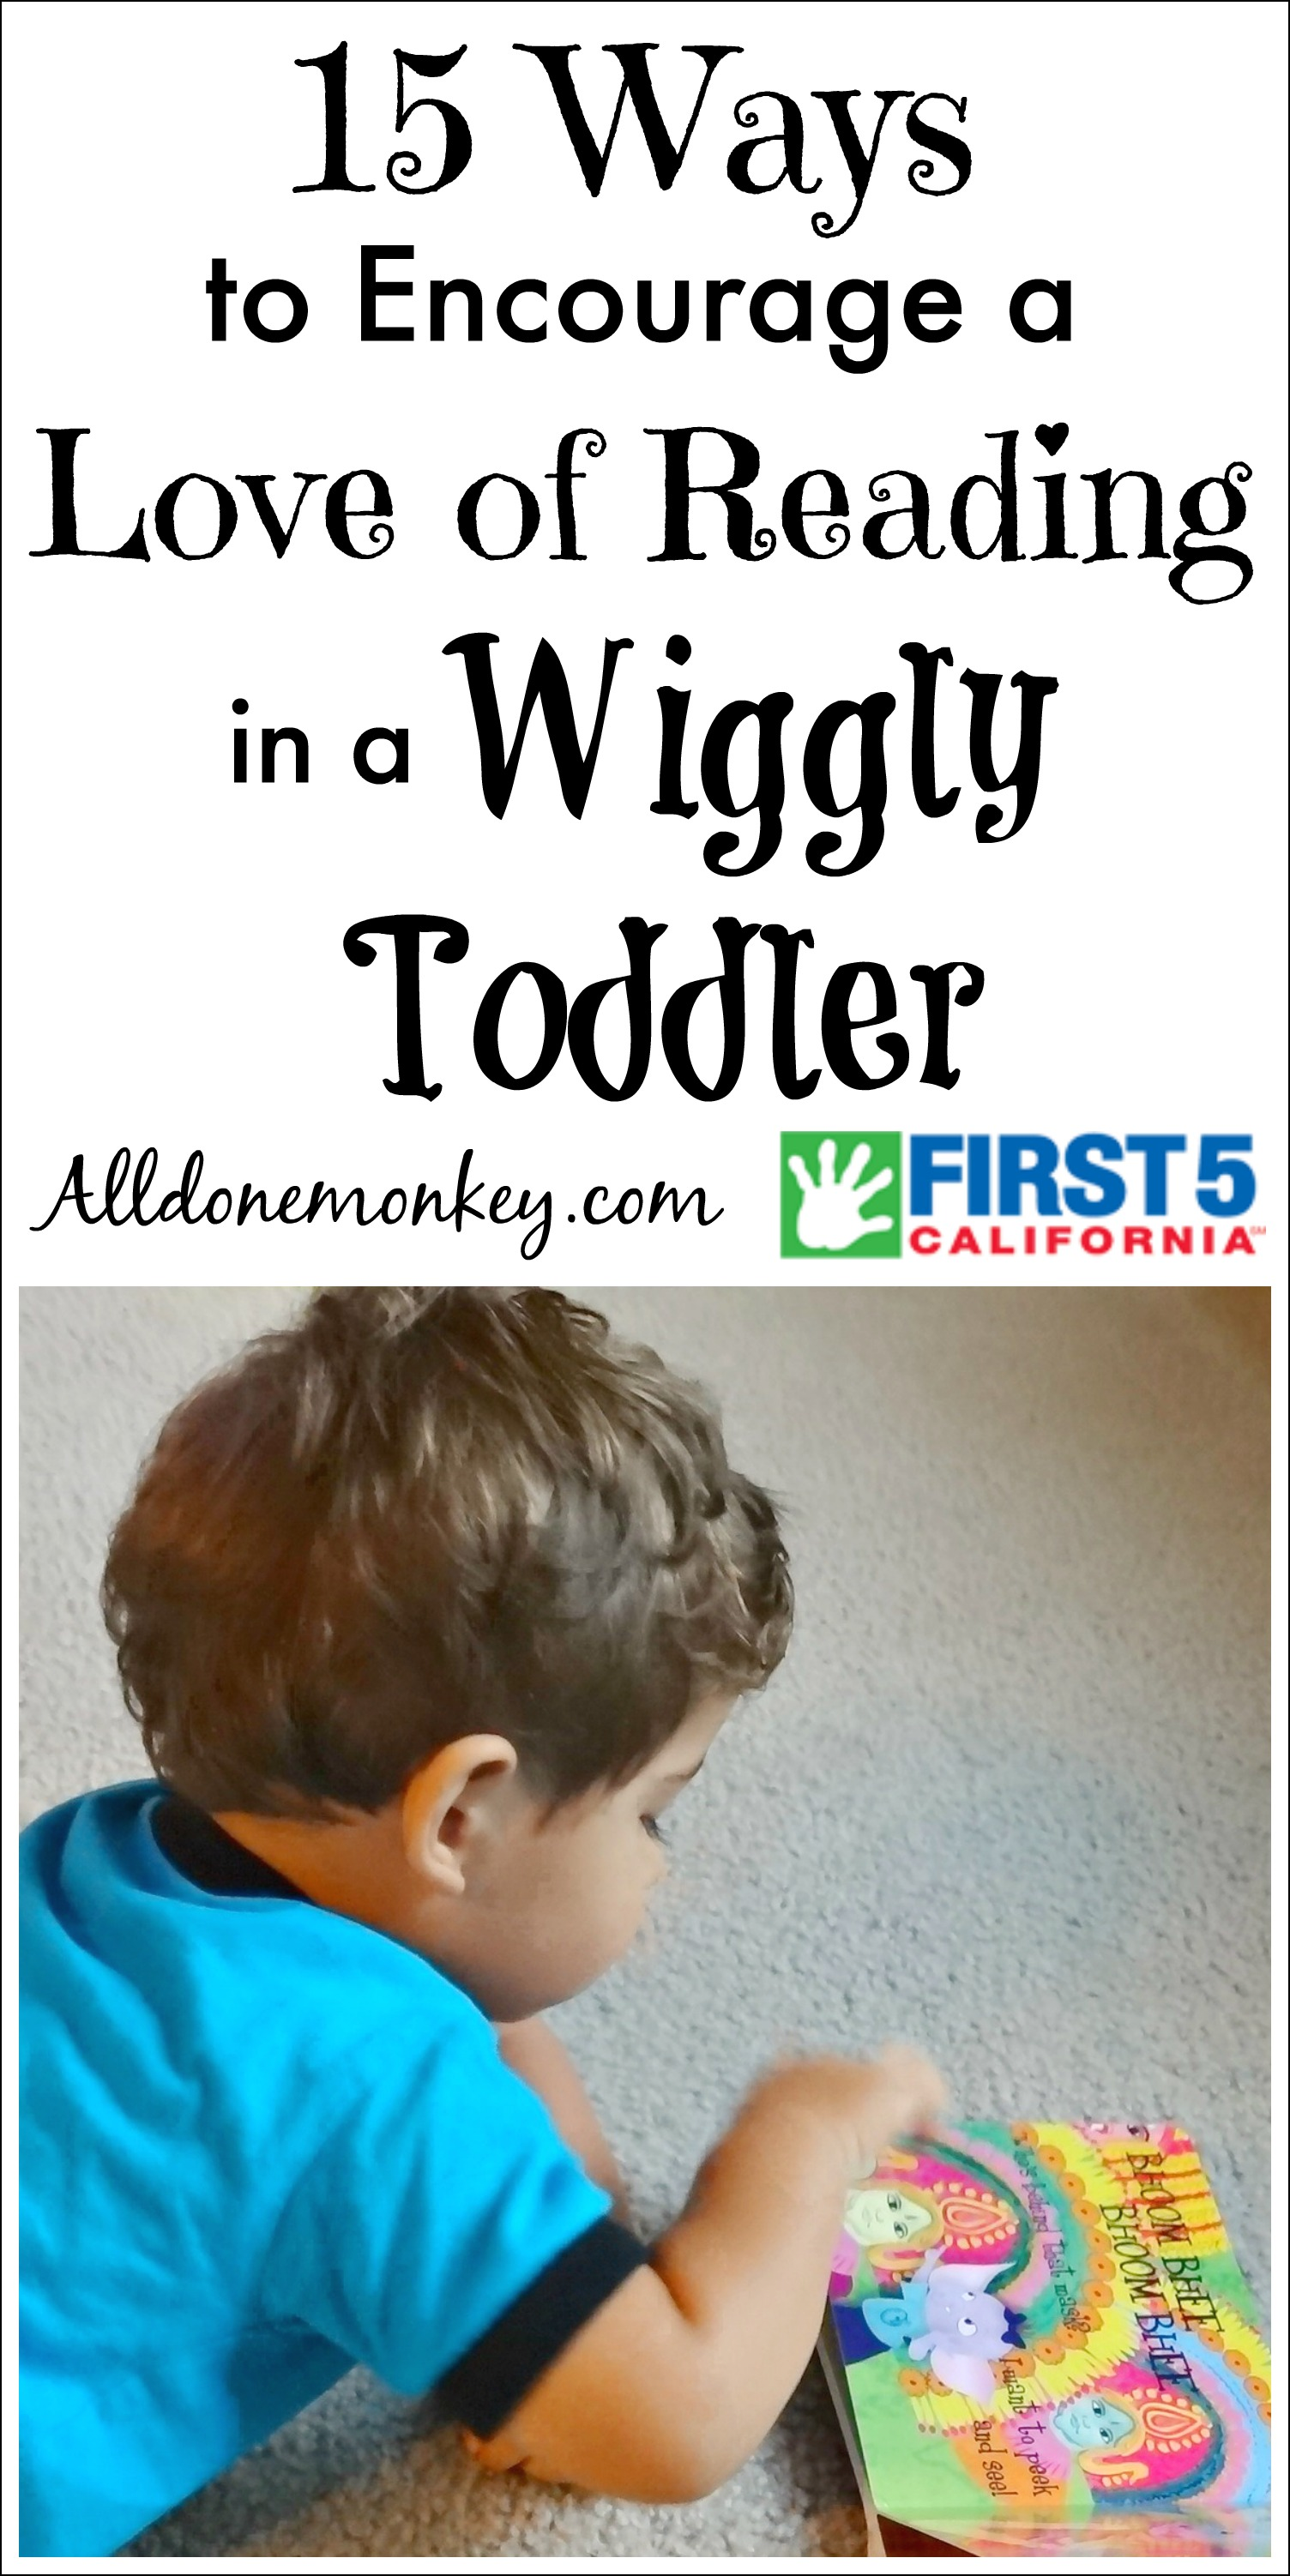 15 Ways to Encourage a Love of Reading in a Wiggly Toddler | Alldonemonkey.com